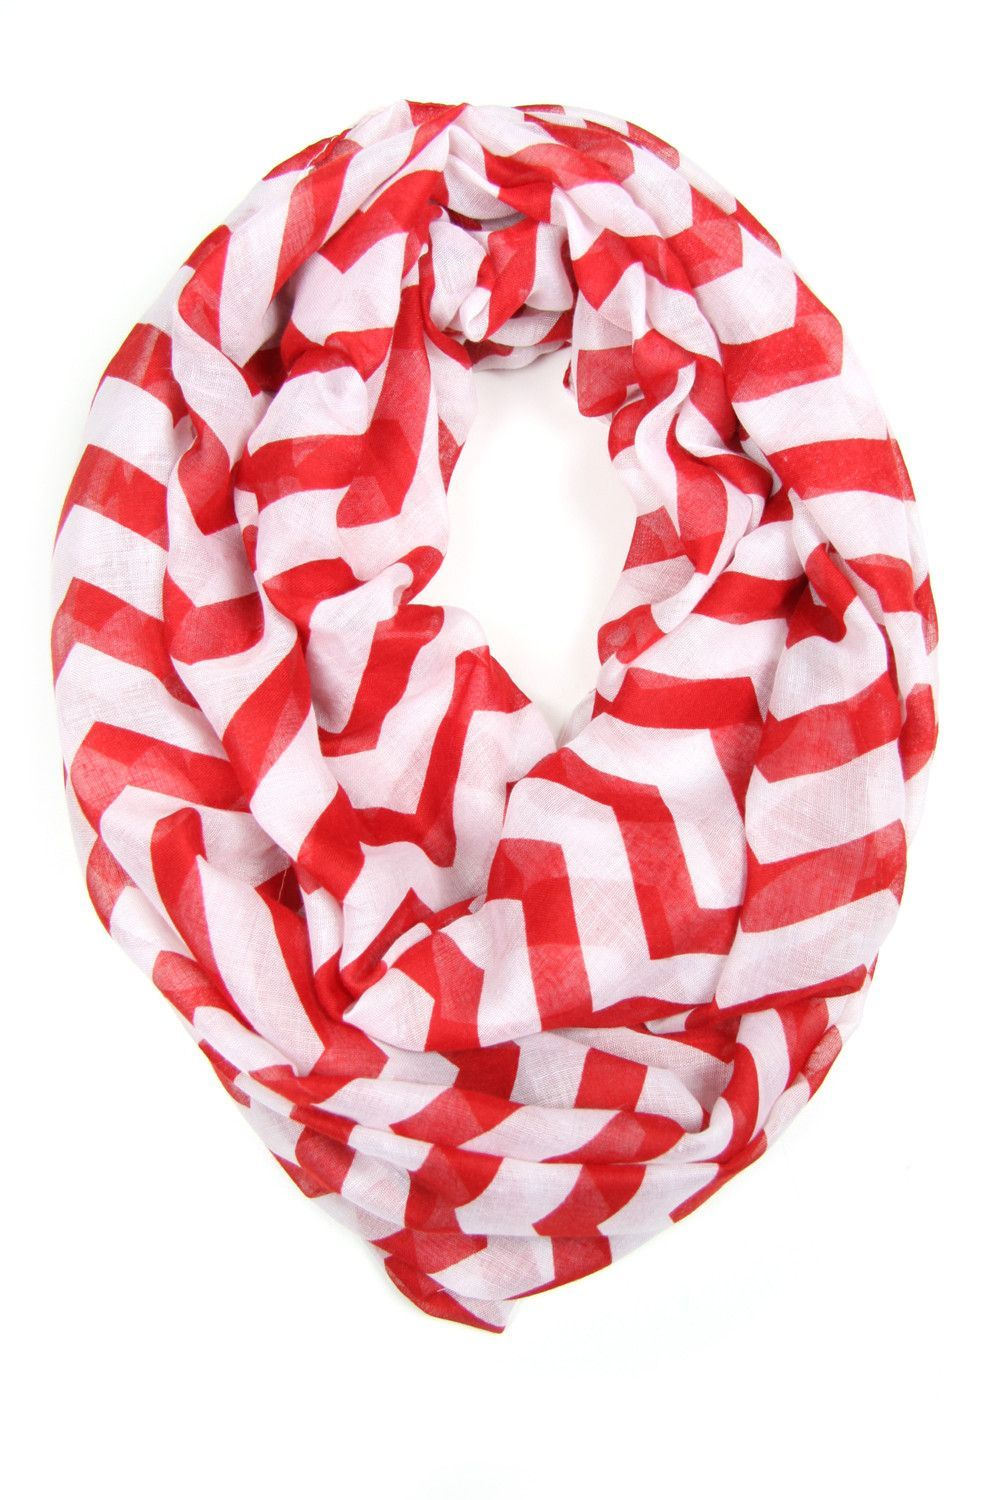 Cherry Red Chevron Infinity Scarf from Necklush